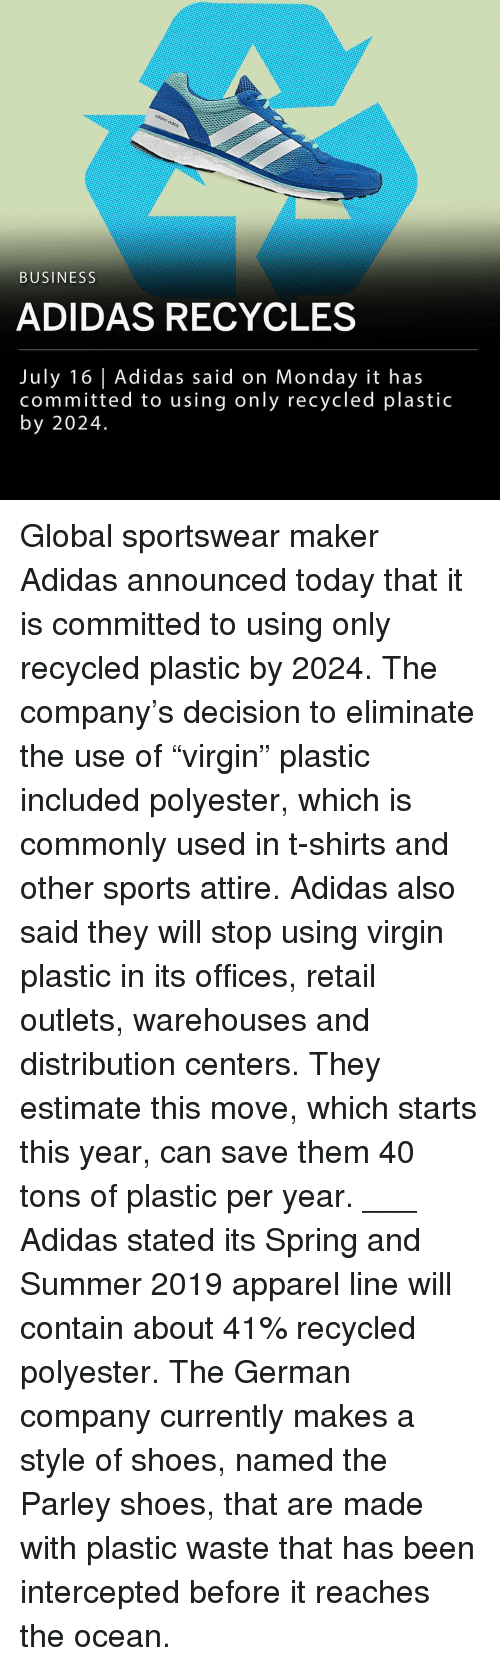 "Estimate: BUSINESS  ADIDAS RECYCLES  July 16 Adidas said on Monday it has  committed to using only recycled plastic  by 2024. Global sportswear maker Adidas announced today that it is committed to using only recycled plastic by 2024. The company's decision to eliminate the use of ""virgin"" plastic included polyester, which is commonly used in t-shirts and other sports attire. Adidas also said they will stop using virgin plastic in its offices, retail outlets, warehouses and distribution centers. They estimate this move, which starts this year, can save them 40 tons of plastic per year. ___ Adidas stated its Spring and Summer 2019 apparel line will contain about 41% recycled polyester. The German company currently makes a style of shoes, named the Parley shoes, that are made with plastic waste that has been intercepted before it reaches the ocean."